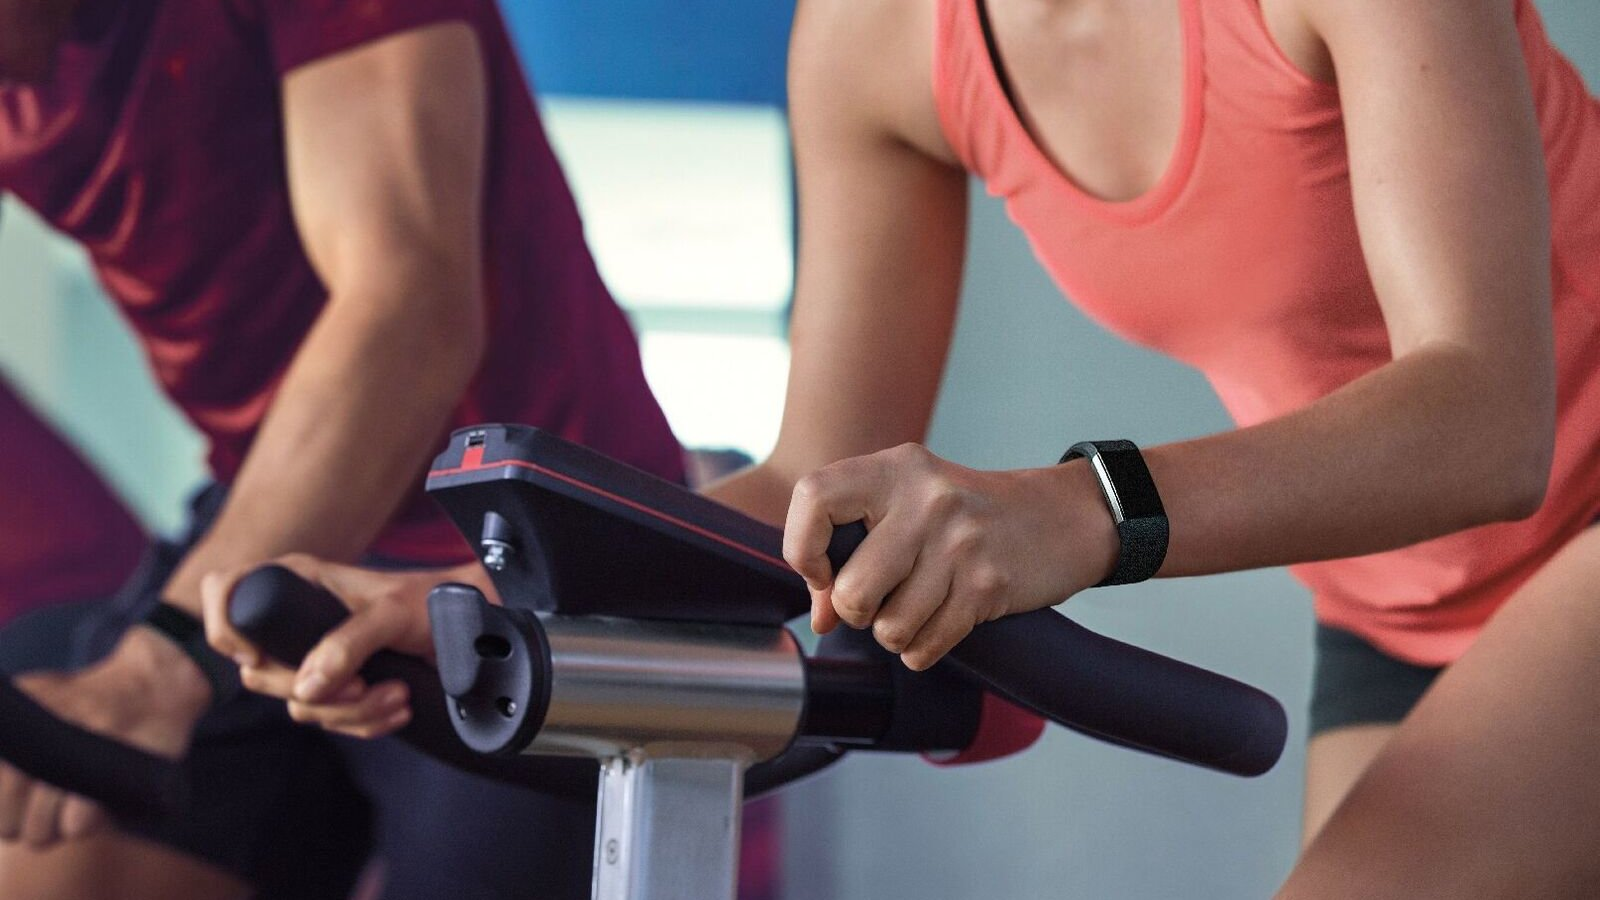 First Look: The New Fitbit Charge 2 and Flex 2